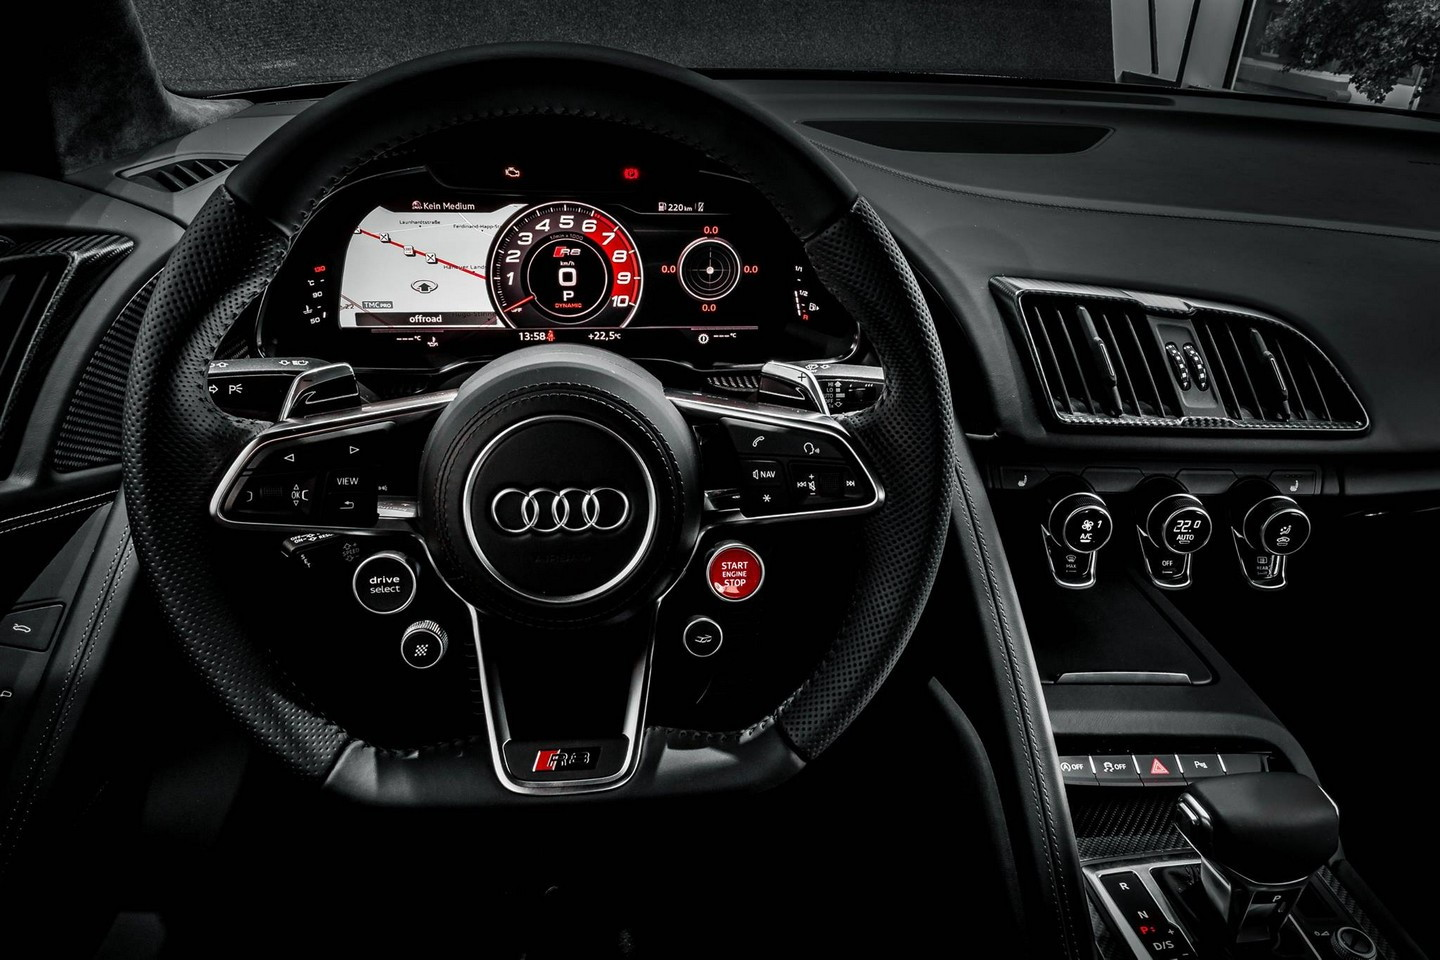 2016 Audi R8 V10 Plus Cockpit and Speedometer